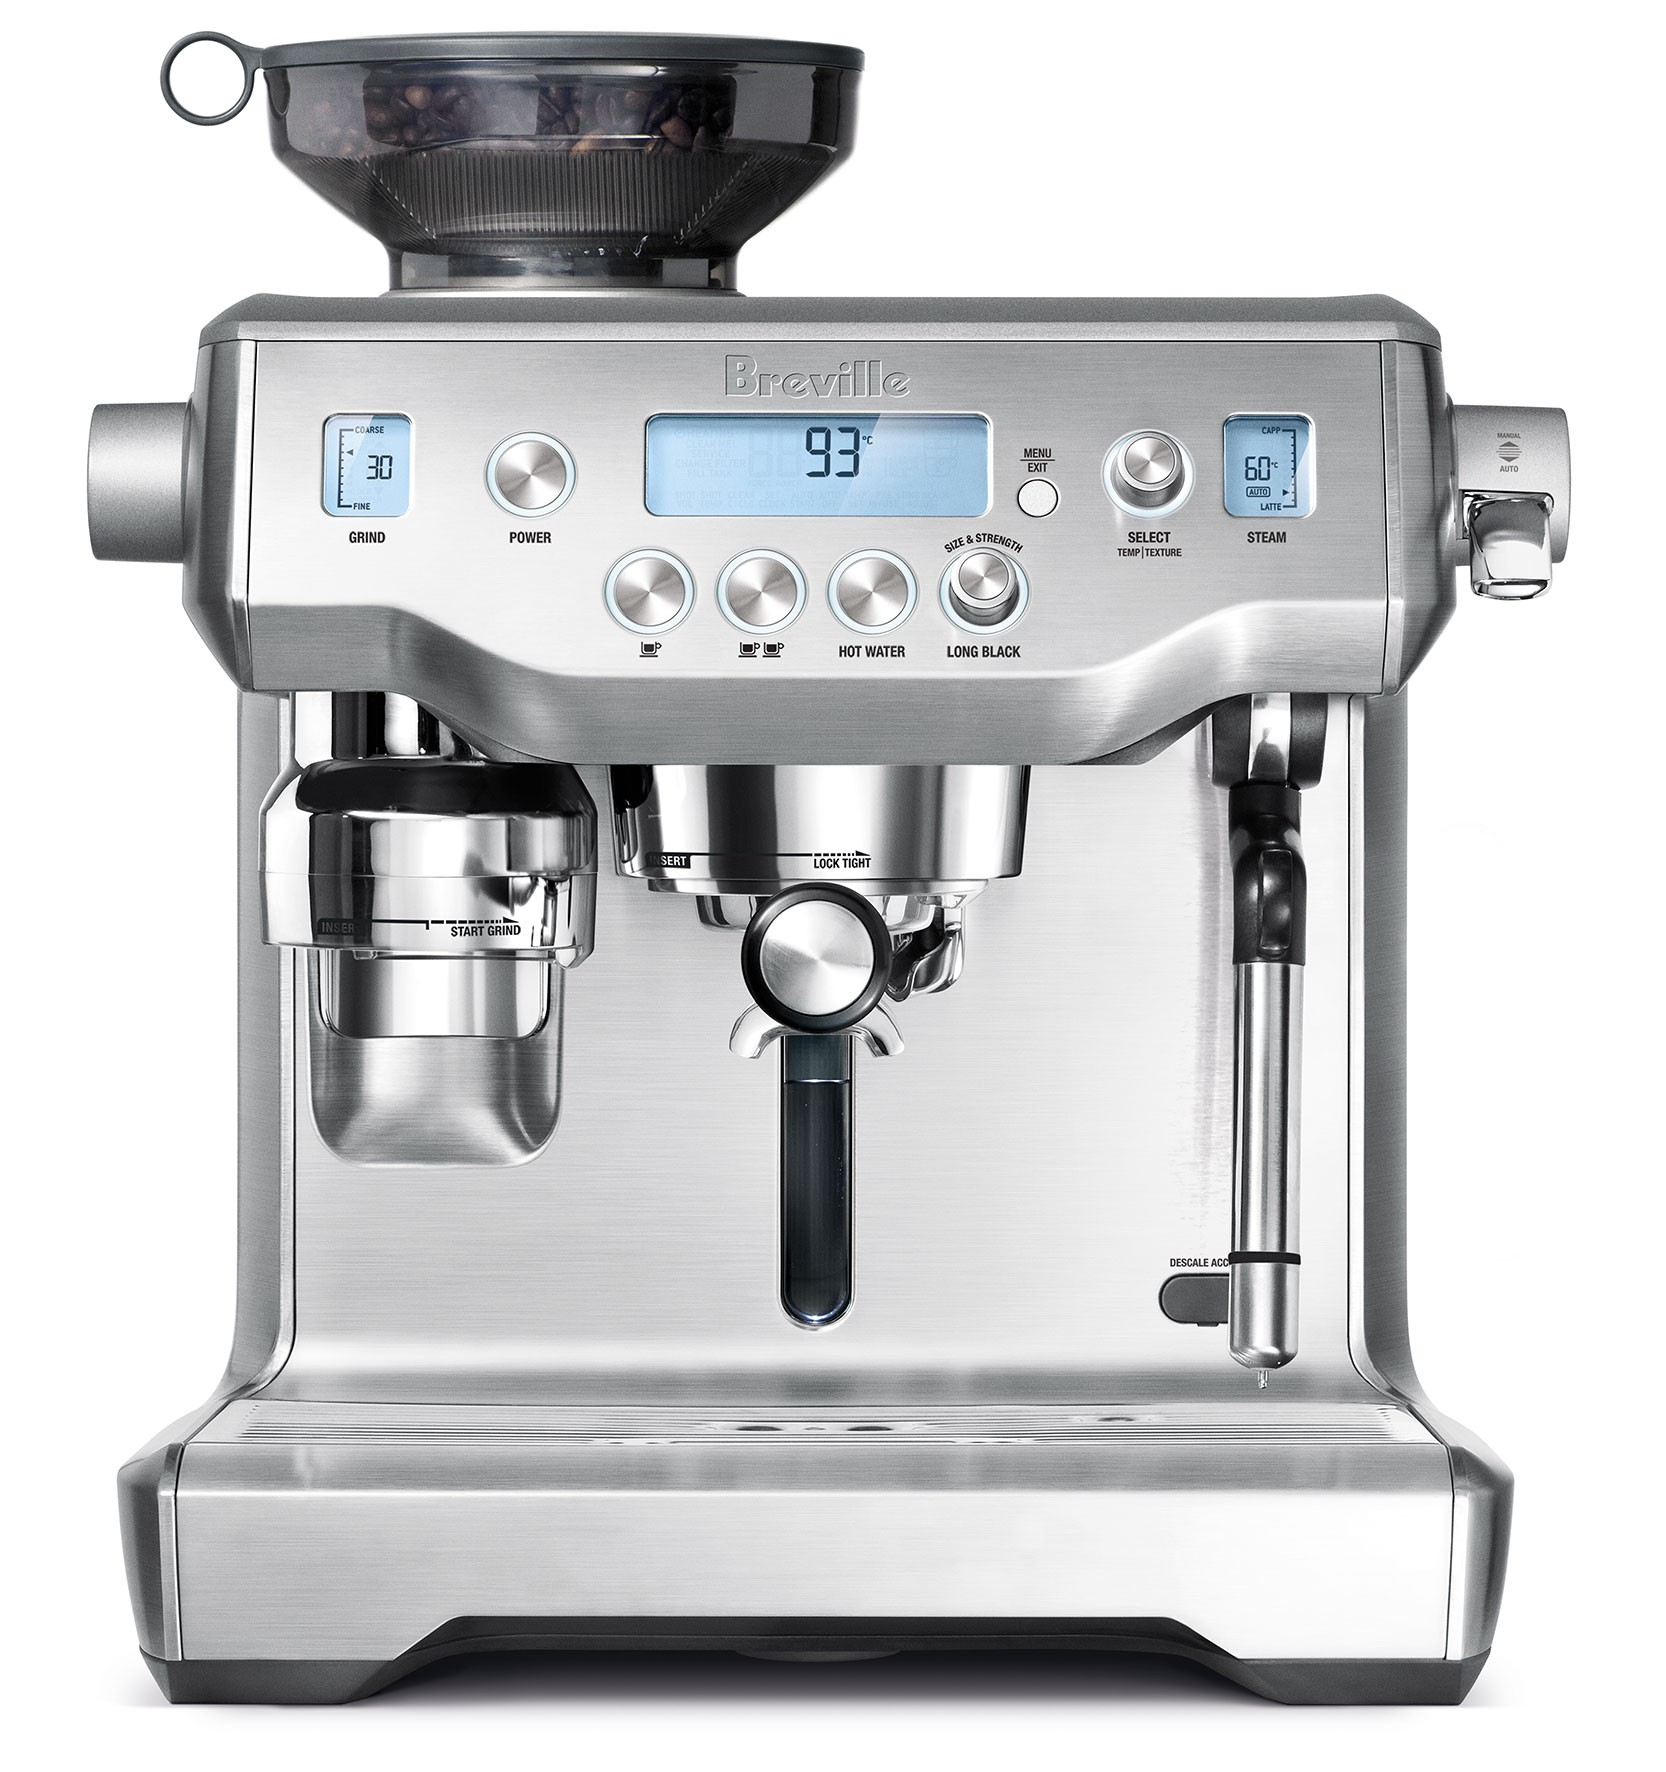 Breville Coffee Maker Esp2 : Breville The Oracle BES980 Reviews - ProductReview.com.au